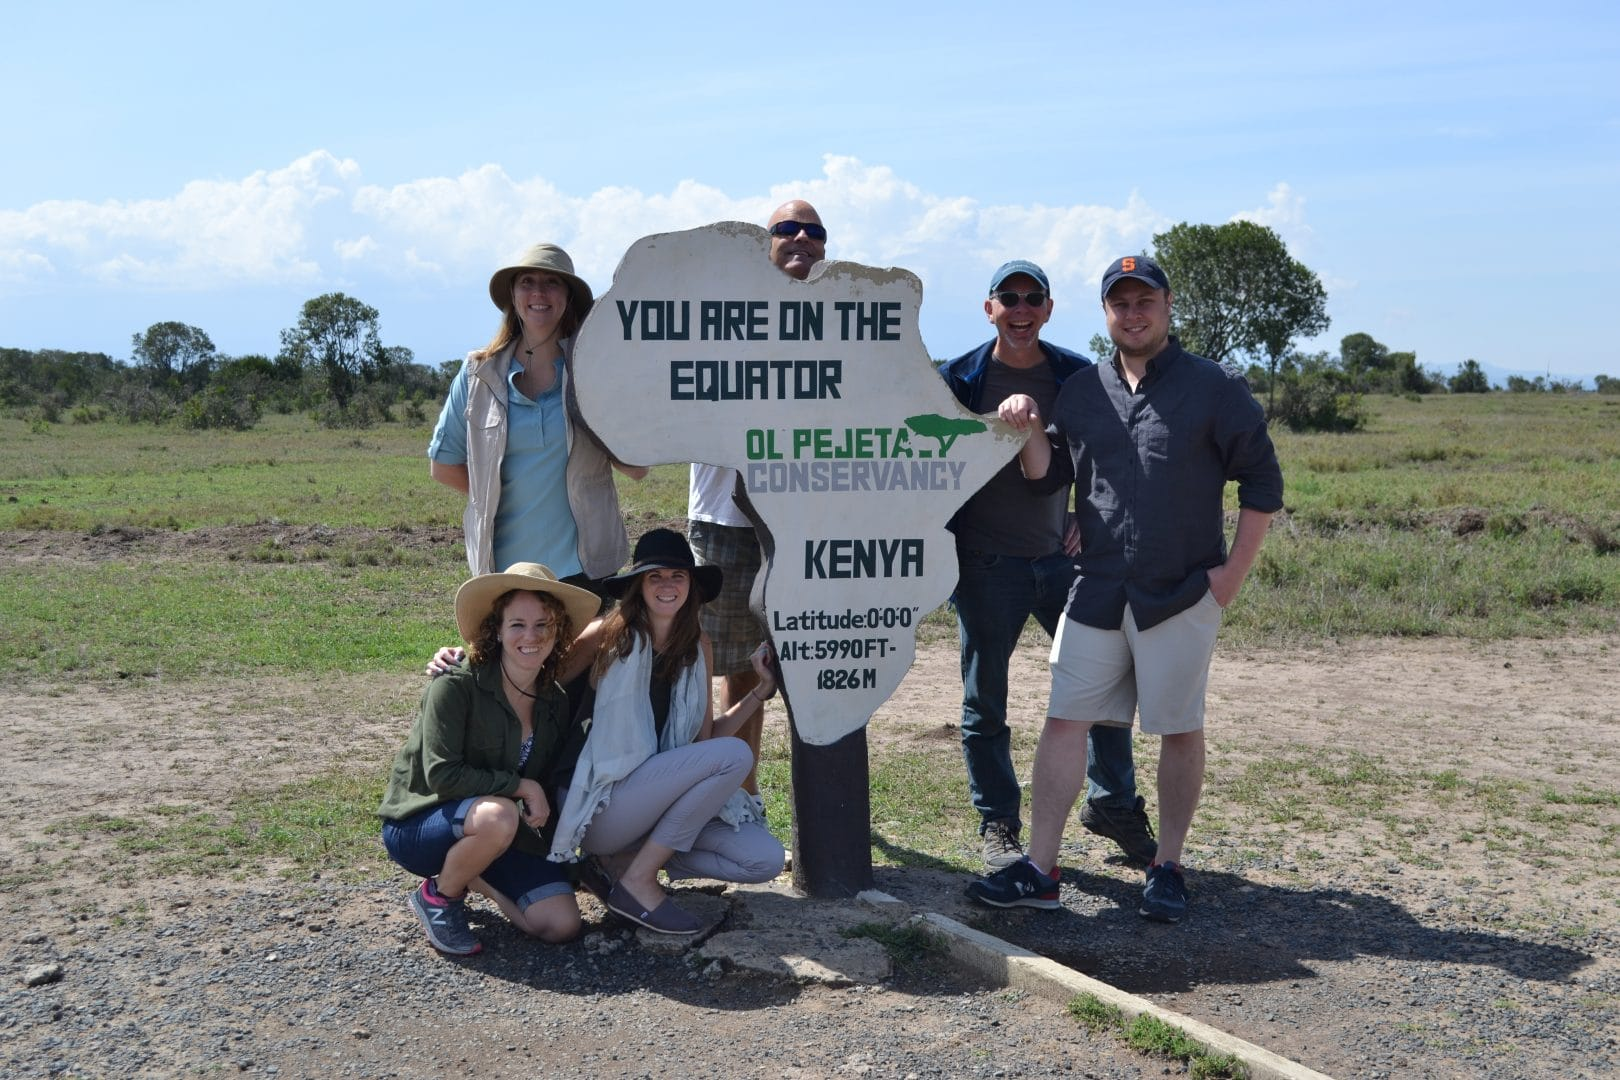 [Special Pricing] May 30th – June 6th Highlights of Kenya Safari